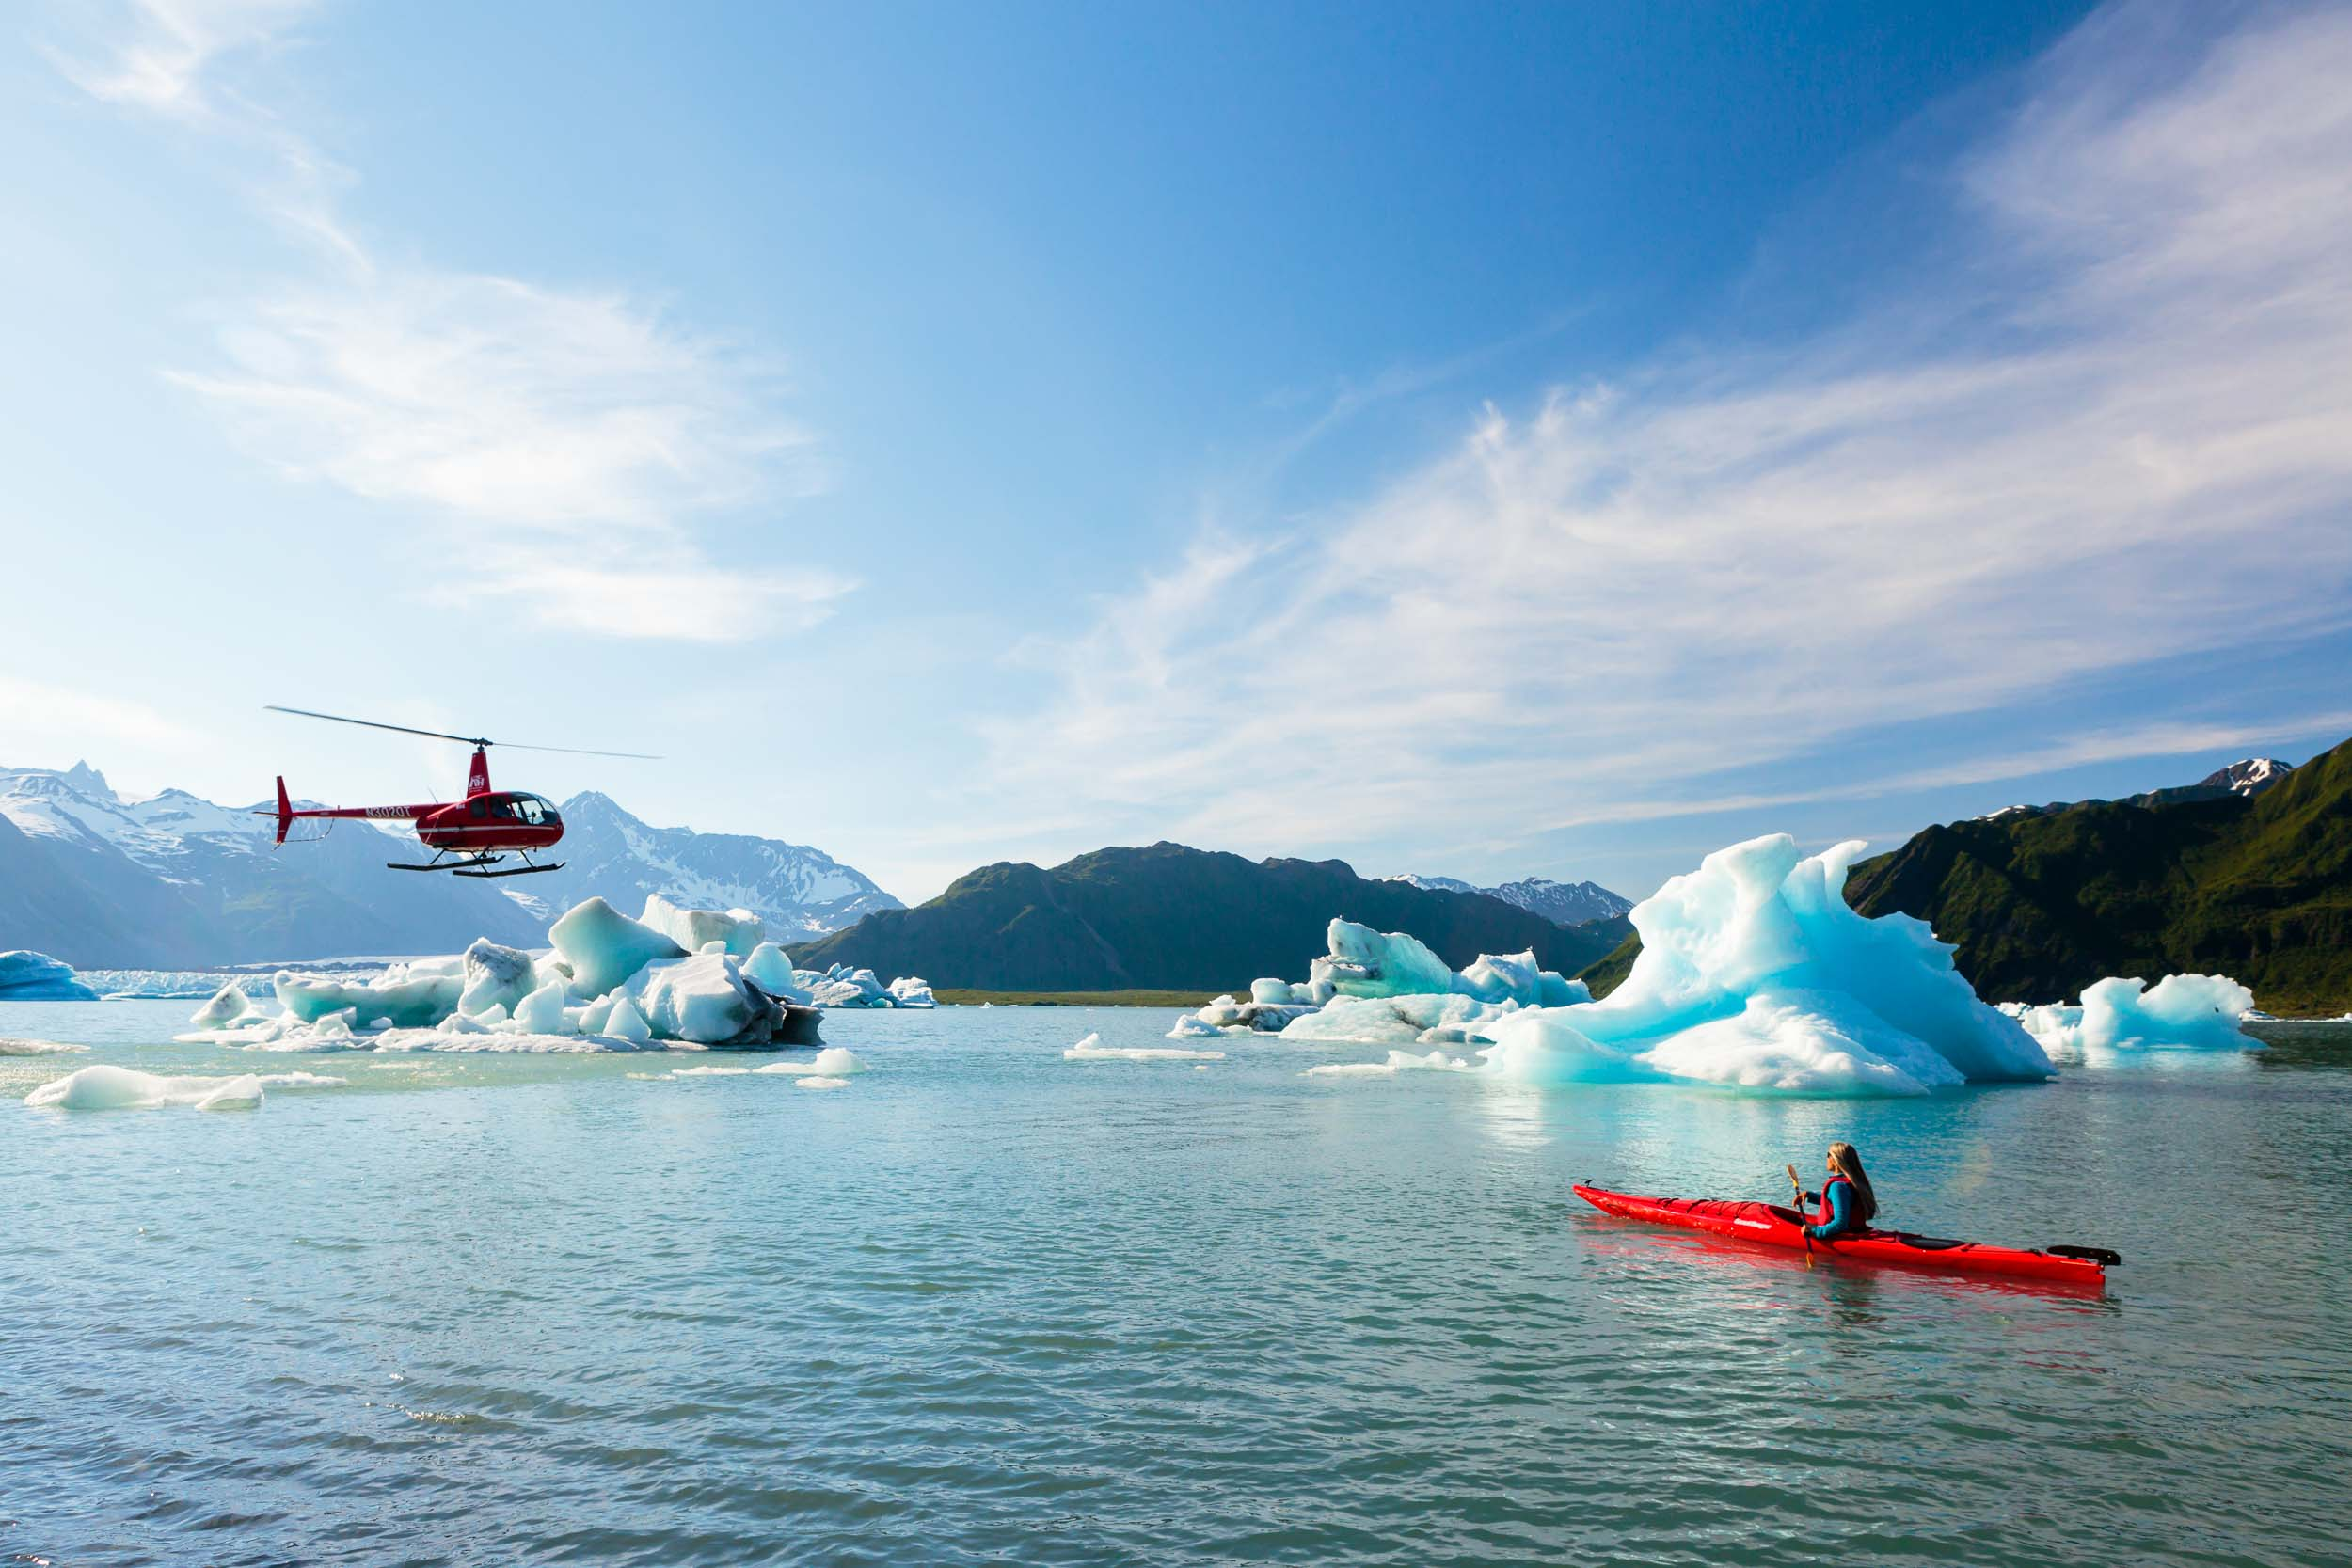 Alaska Tourism Photographer Michael DeYoung Adventure Kayak